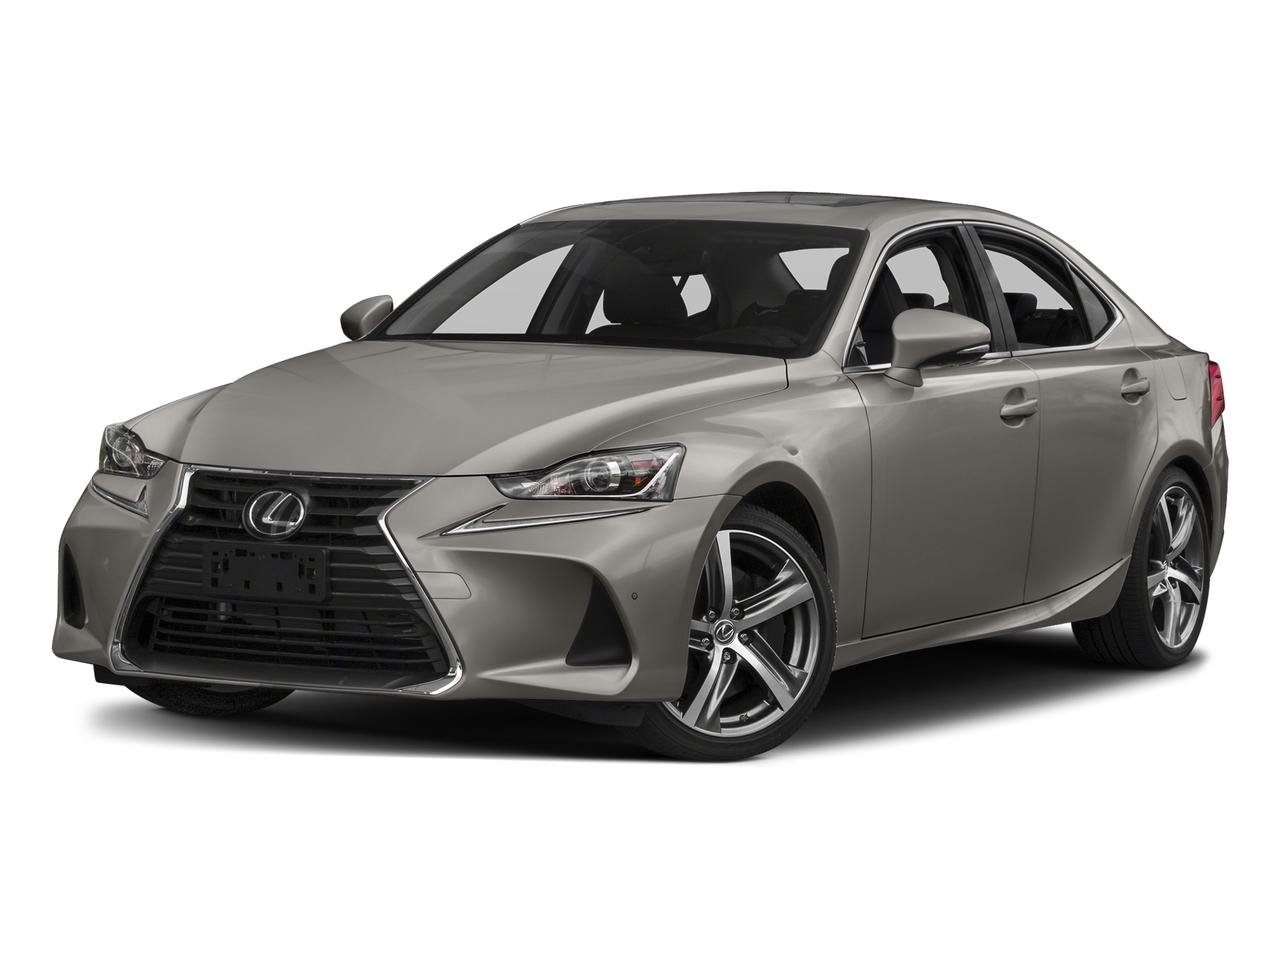 2017 Lexus IS 350 Vehicle Photo in Merriam, KS 66203